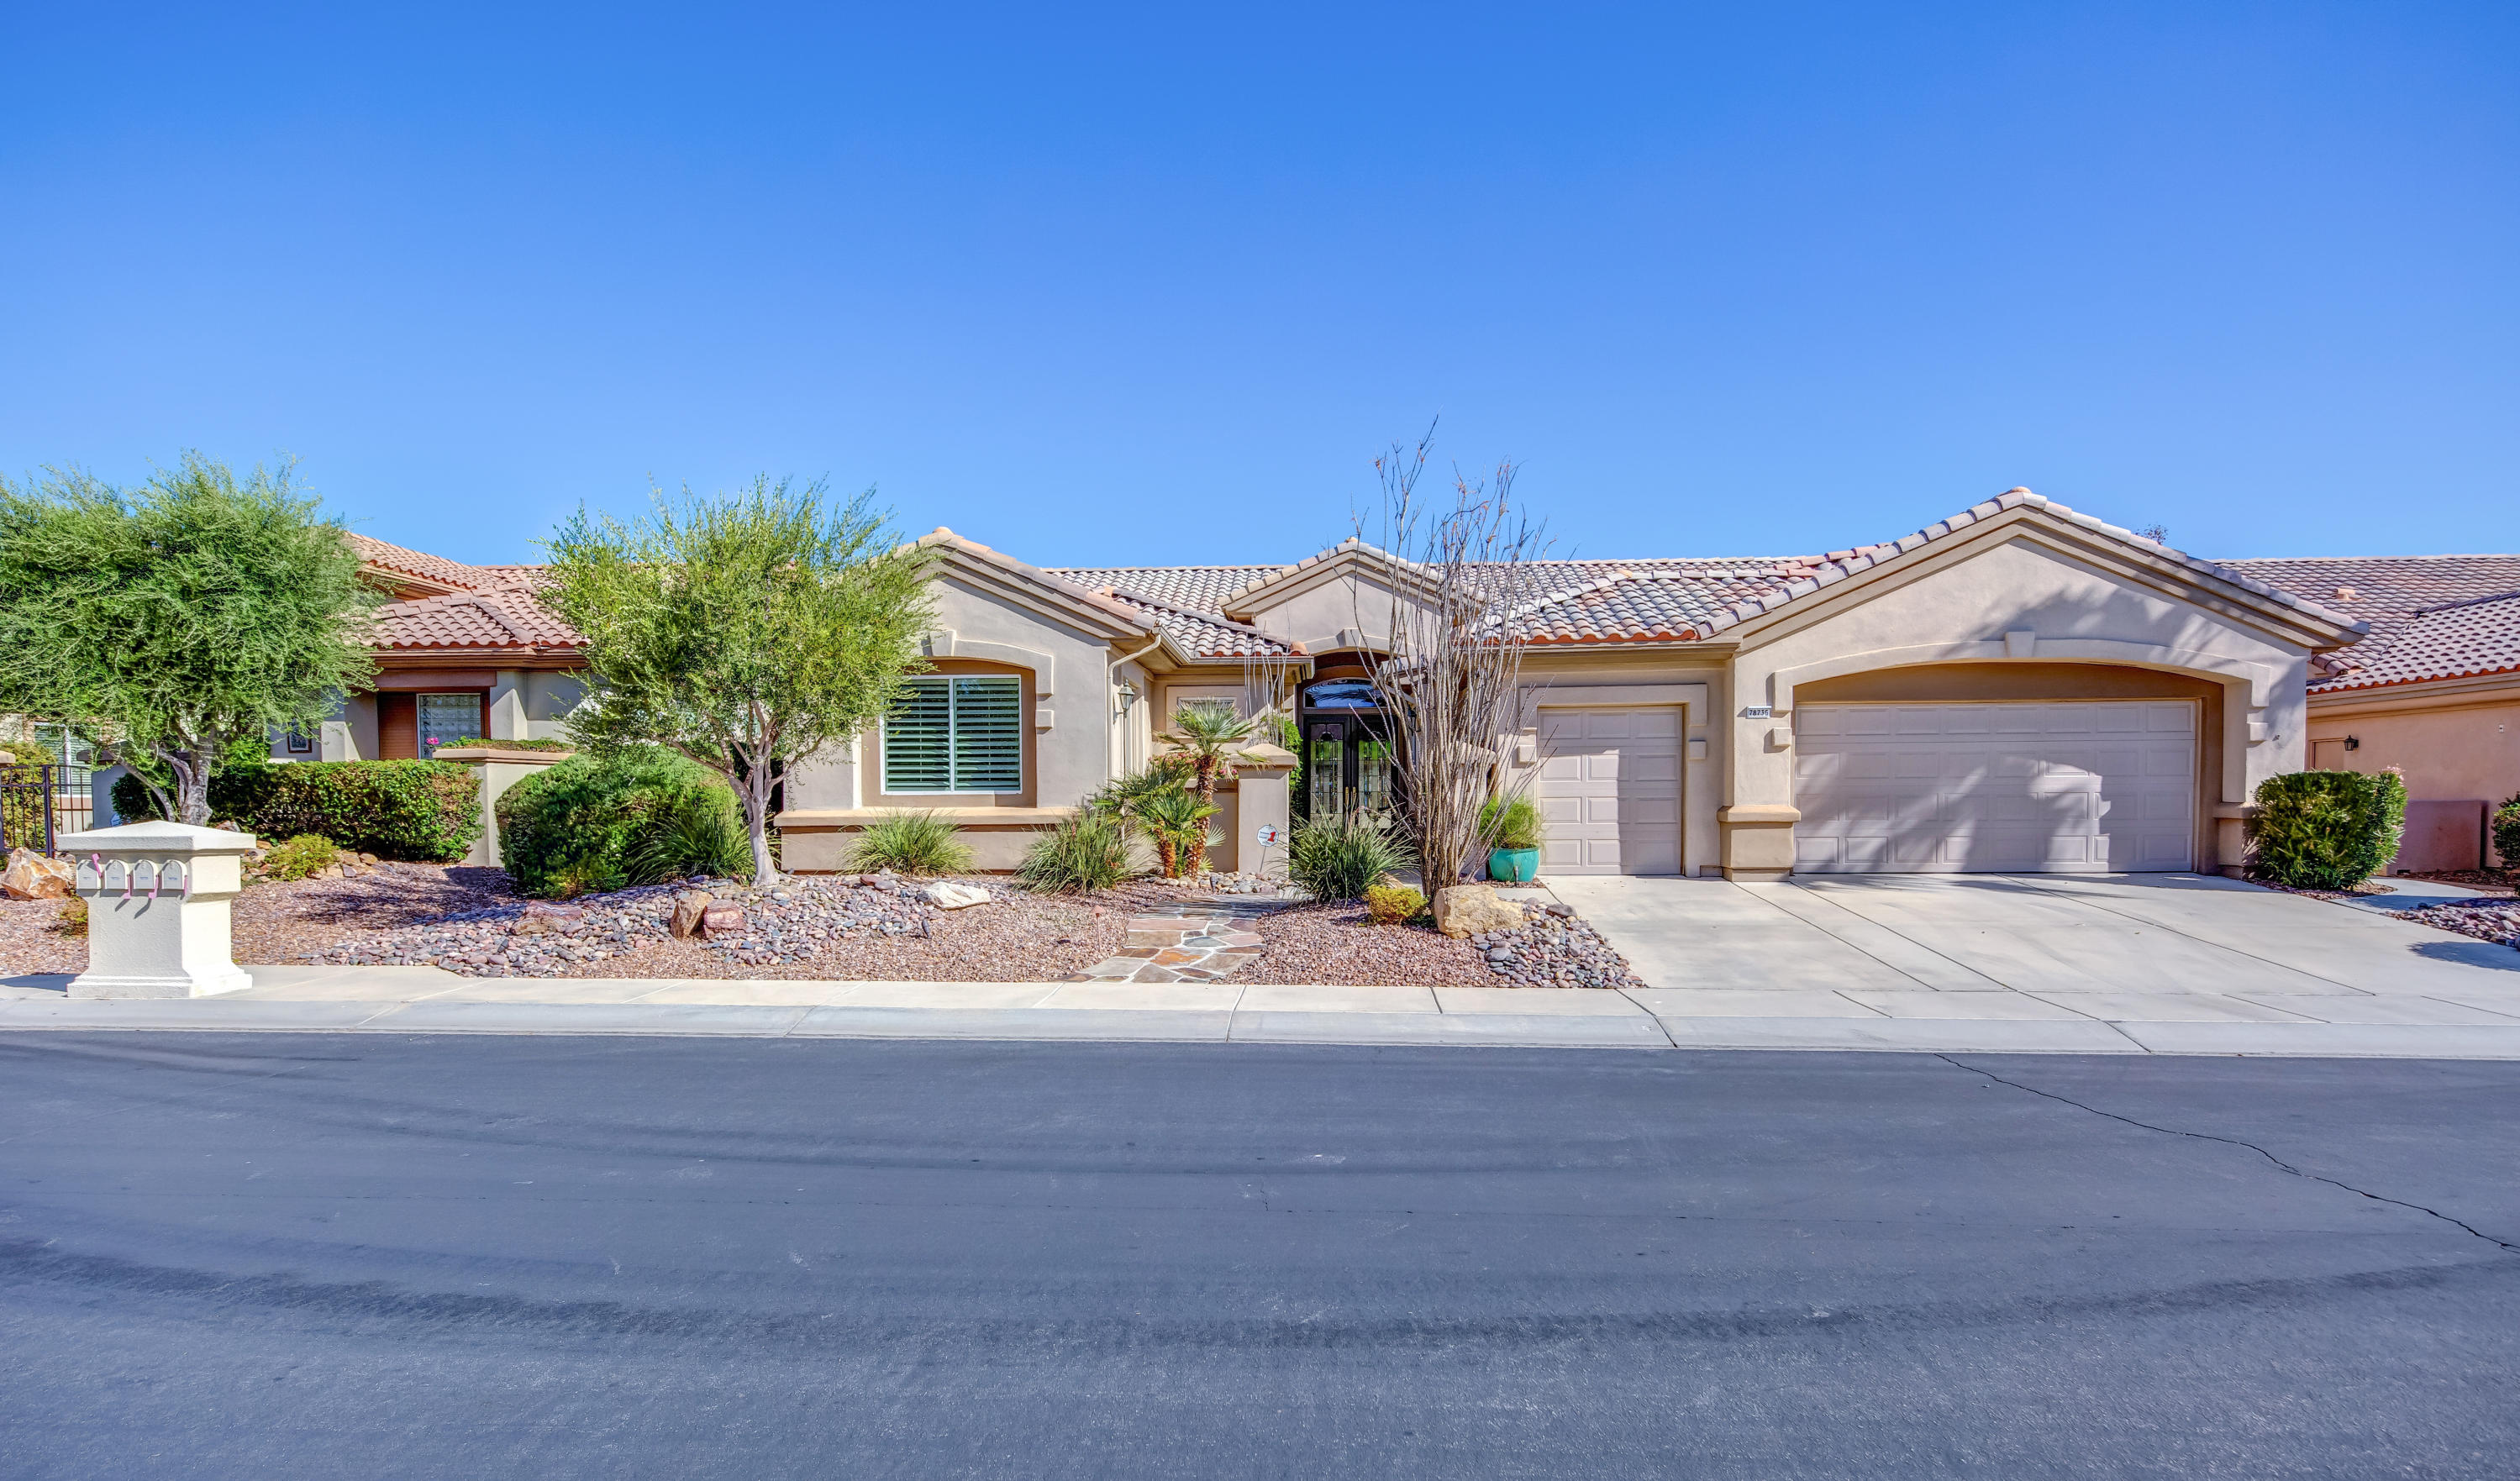 Photo of 78736 Alliance Way, Palm Desert, CA 92211